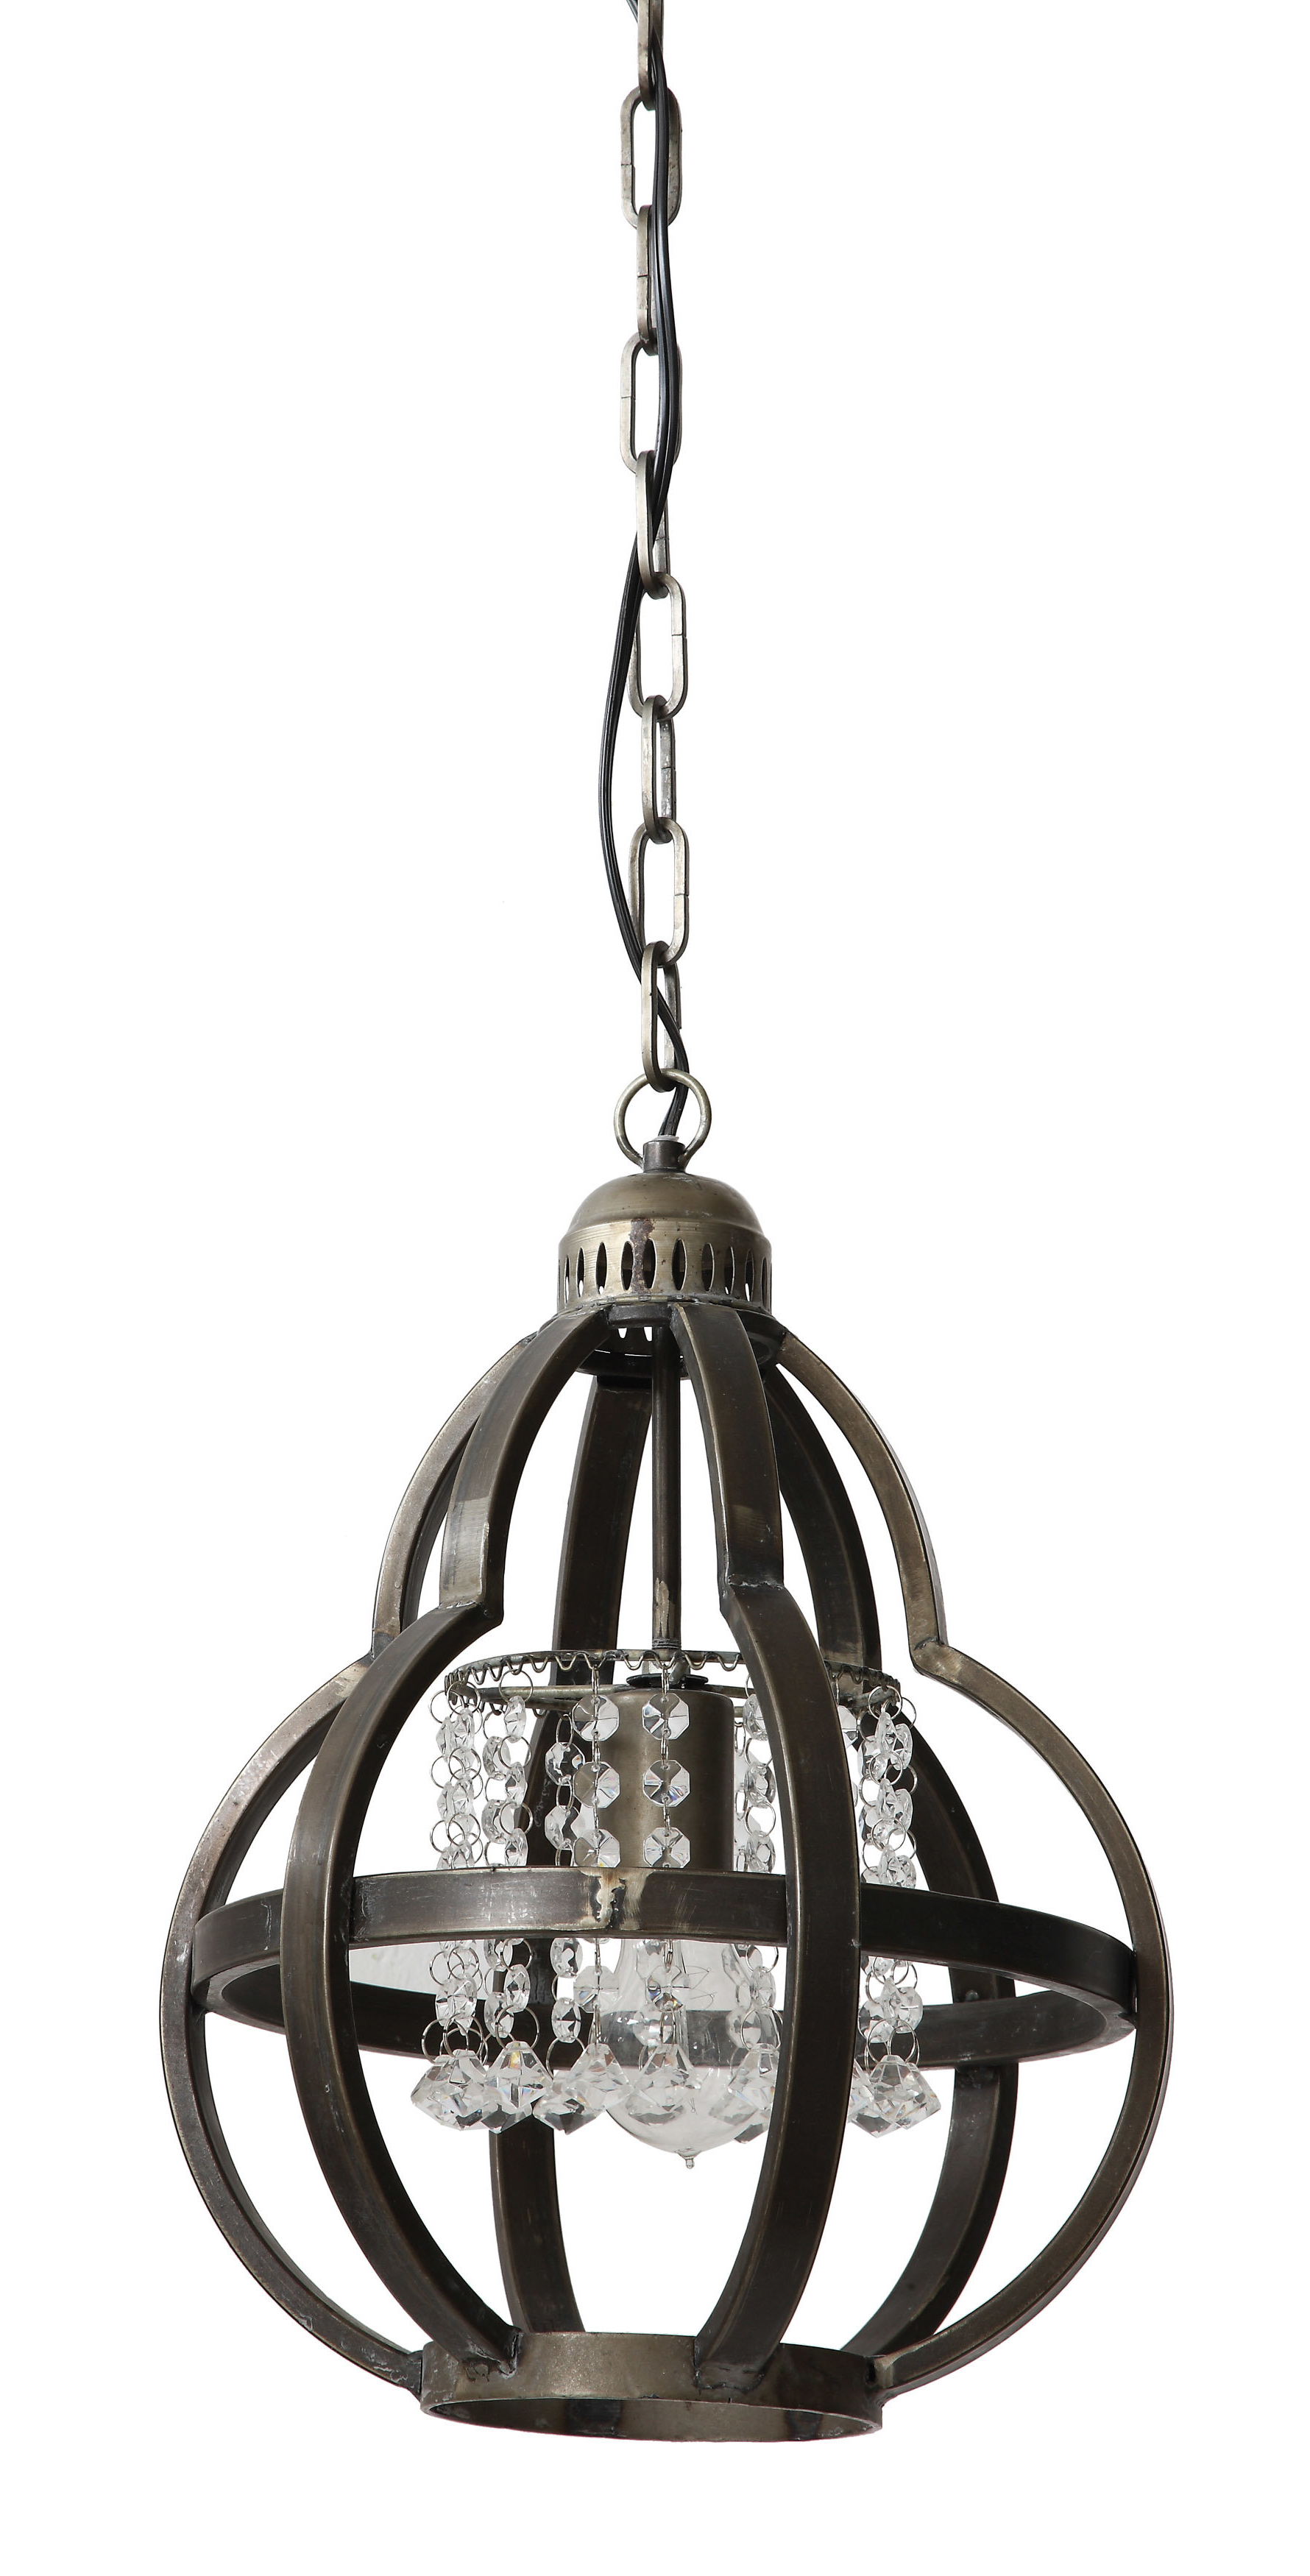 Kliebert 1 Light Single Geometric Pendant Throughout Fashionable Irwin 1 Light Single Globe Pendants (View 10 of 20)